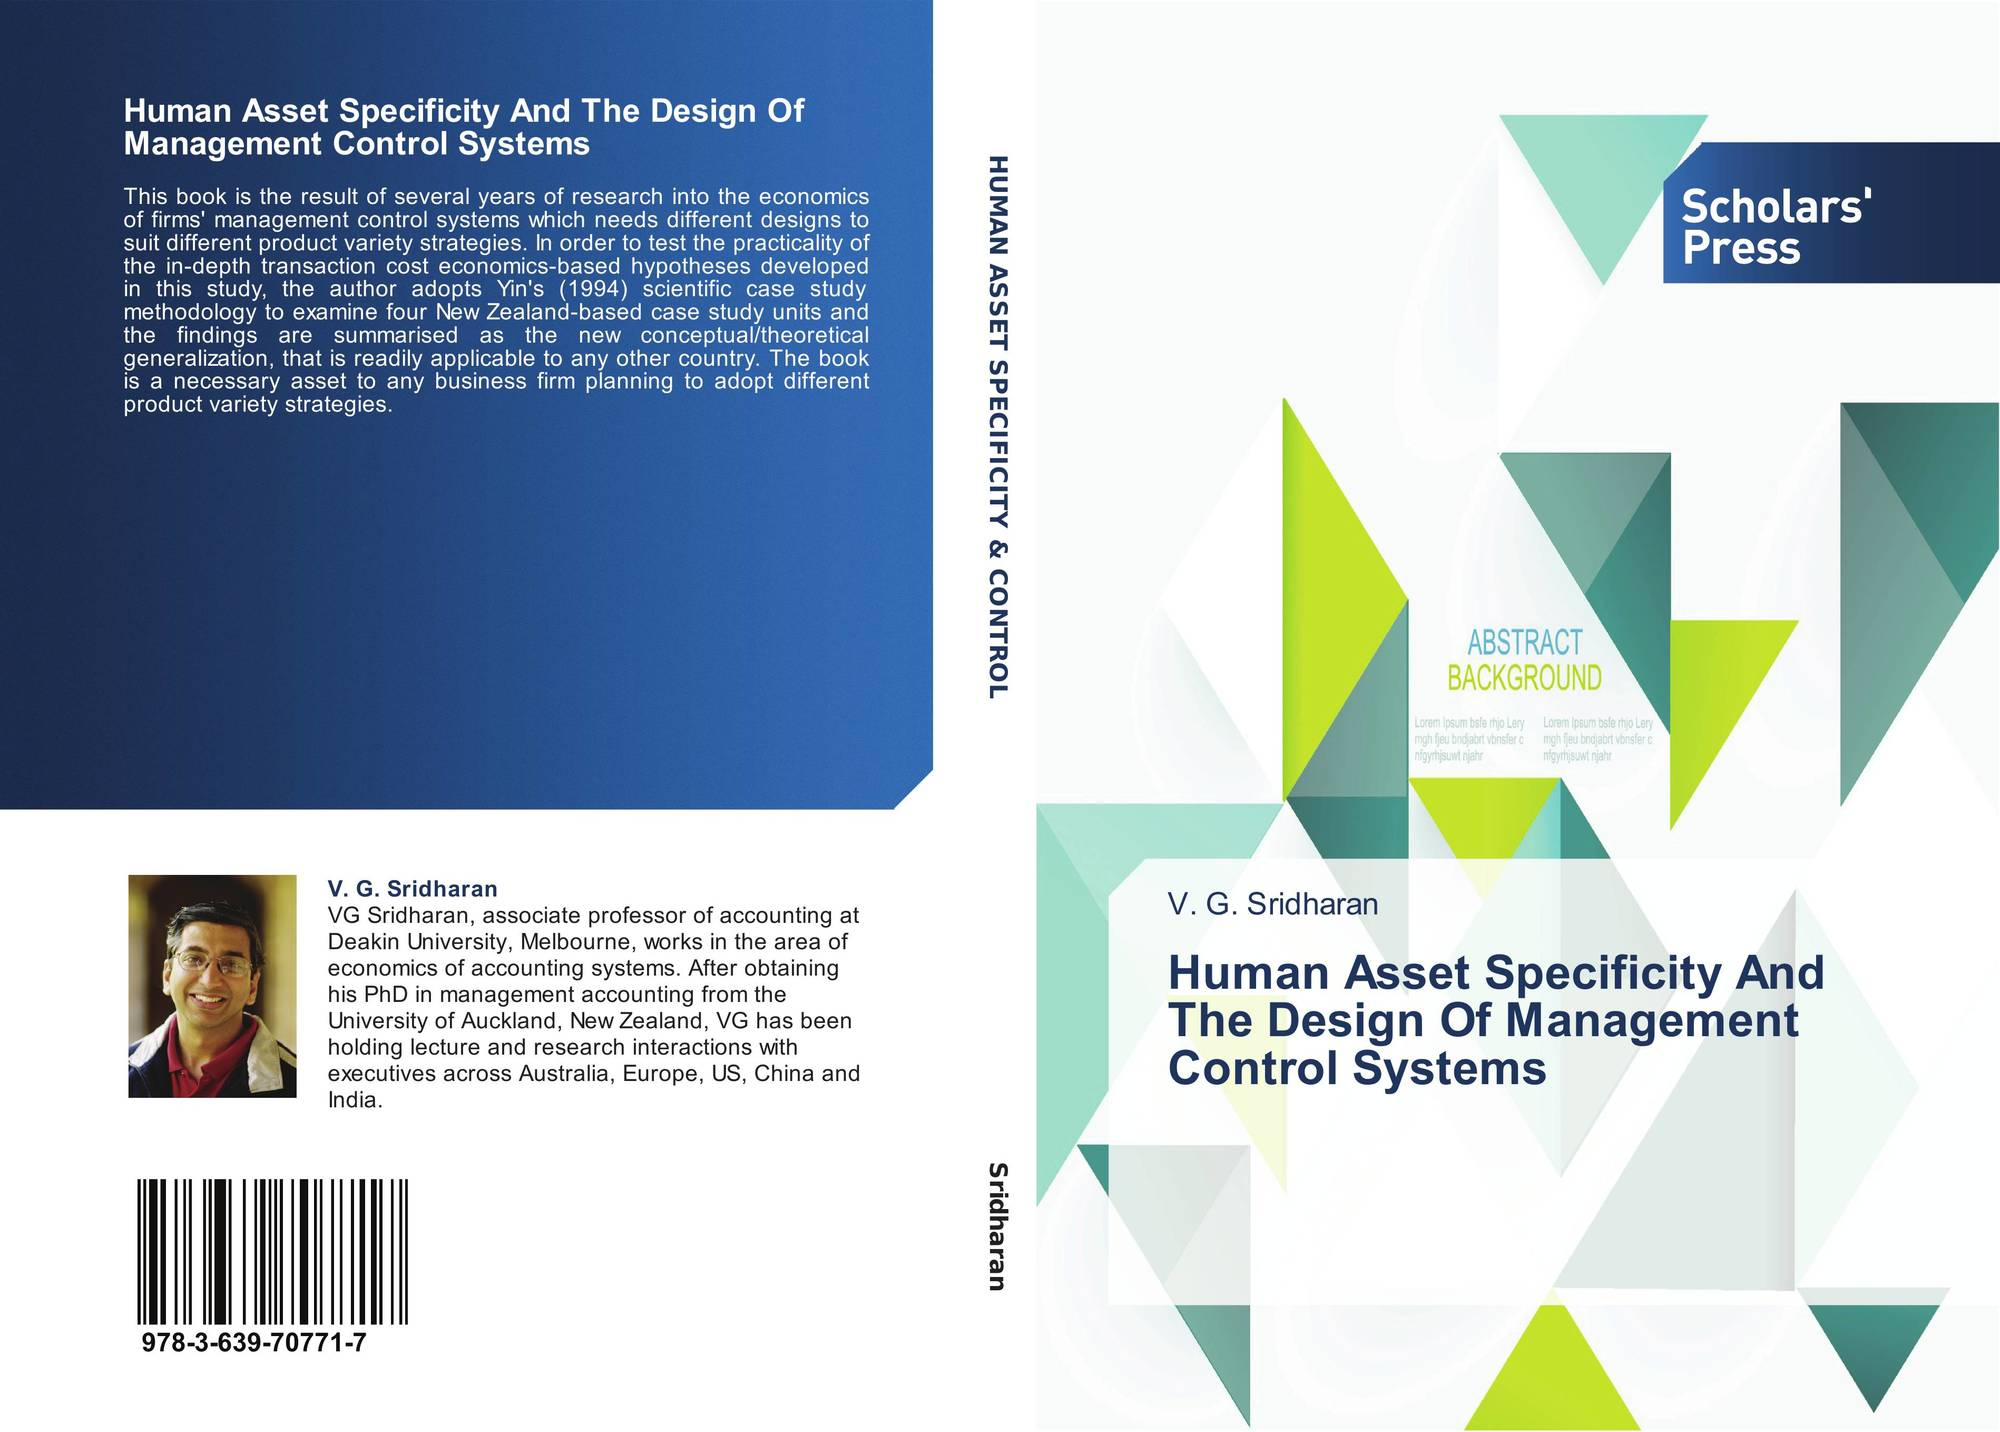 Human Asset Specificity And The Design Of Management Control Systems 978 3 639 70771 7 3639707710 9783639707717 By V G Sridharan